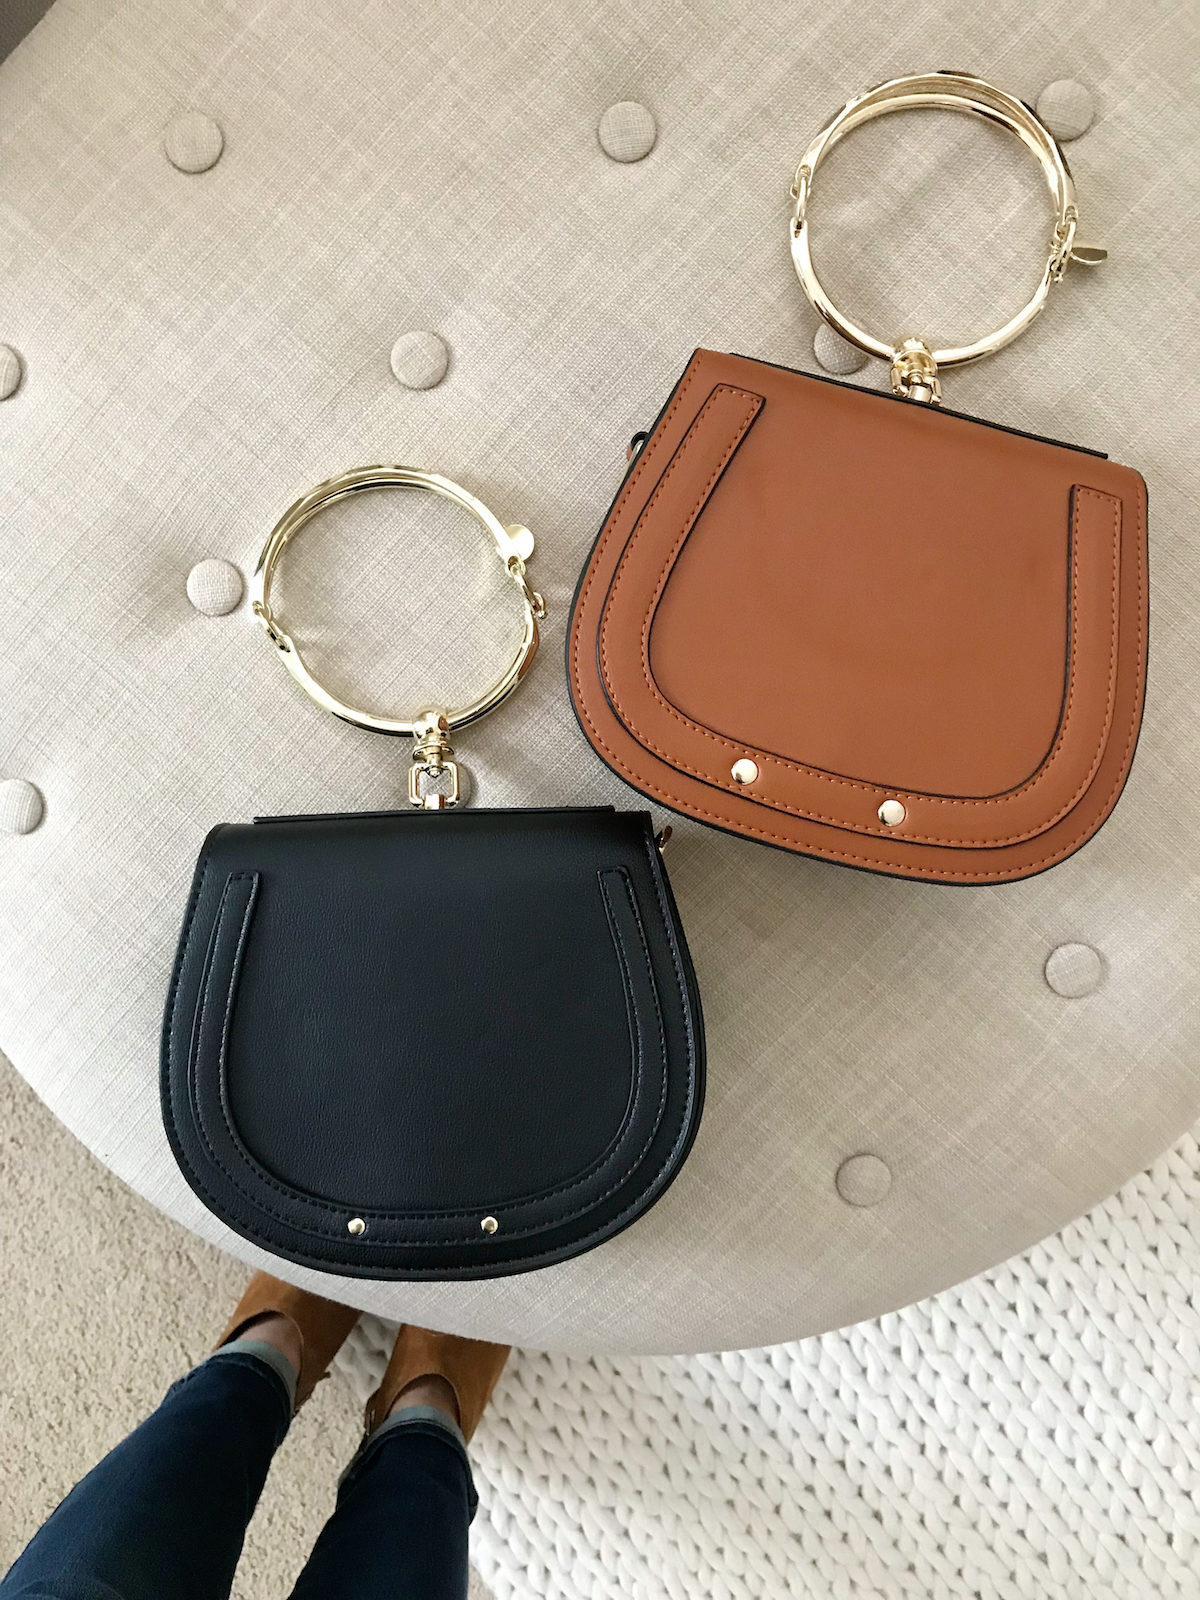 Amazon Fashion Haul Chloe Dupe Bags